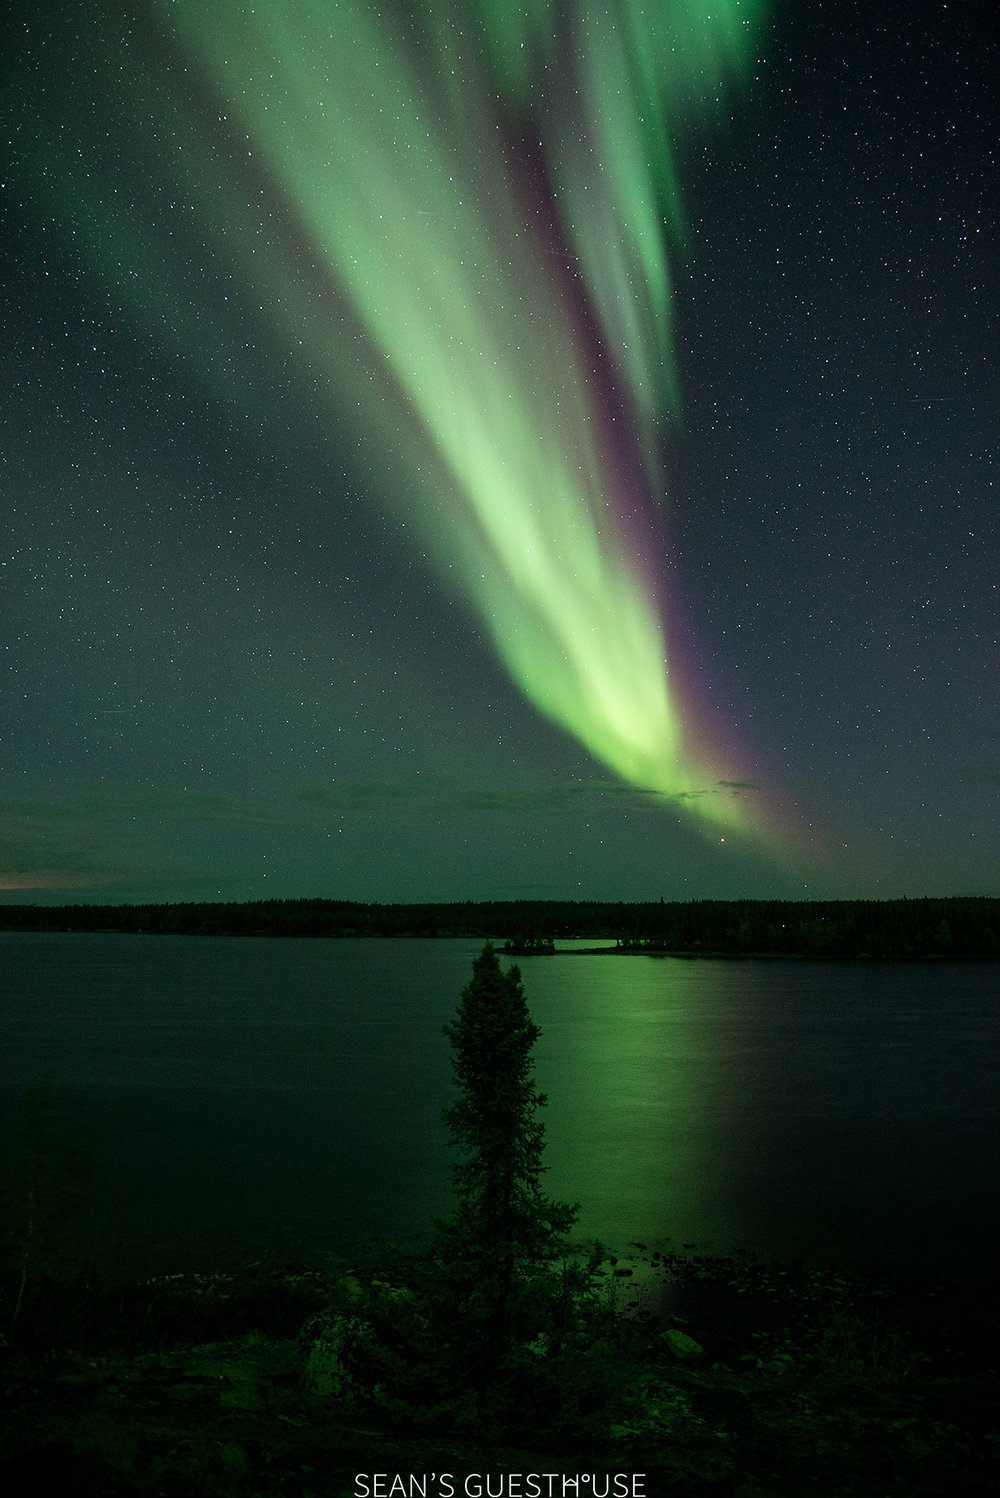 Sean's Guesthouse - Autumn Northern Lights Canada - 4.jpg